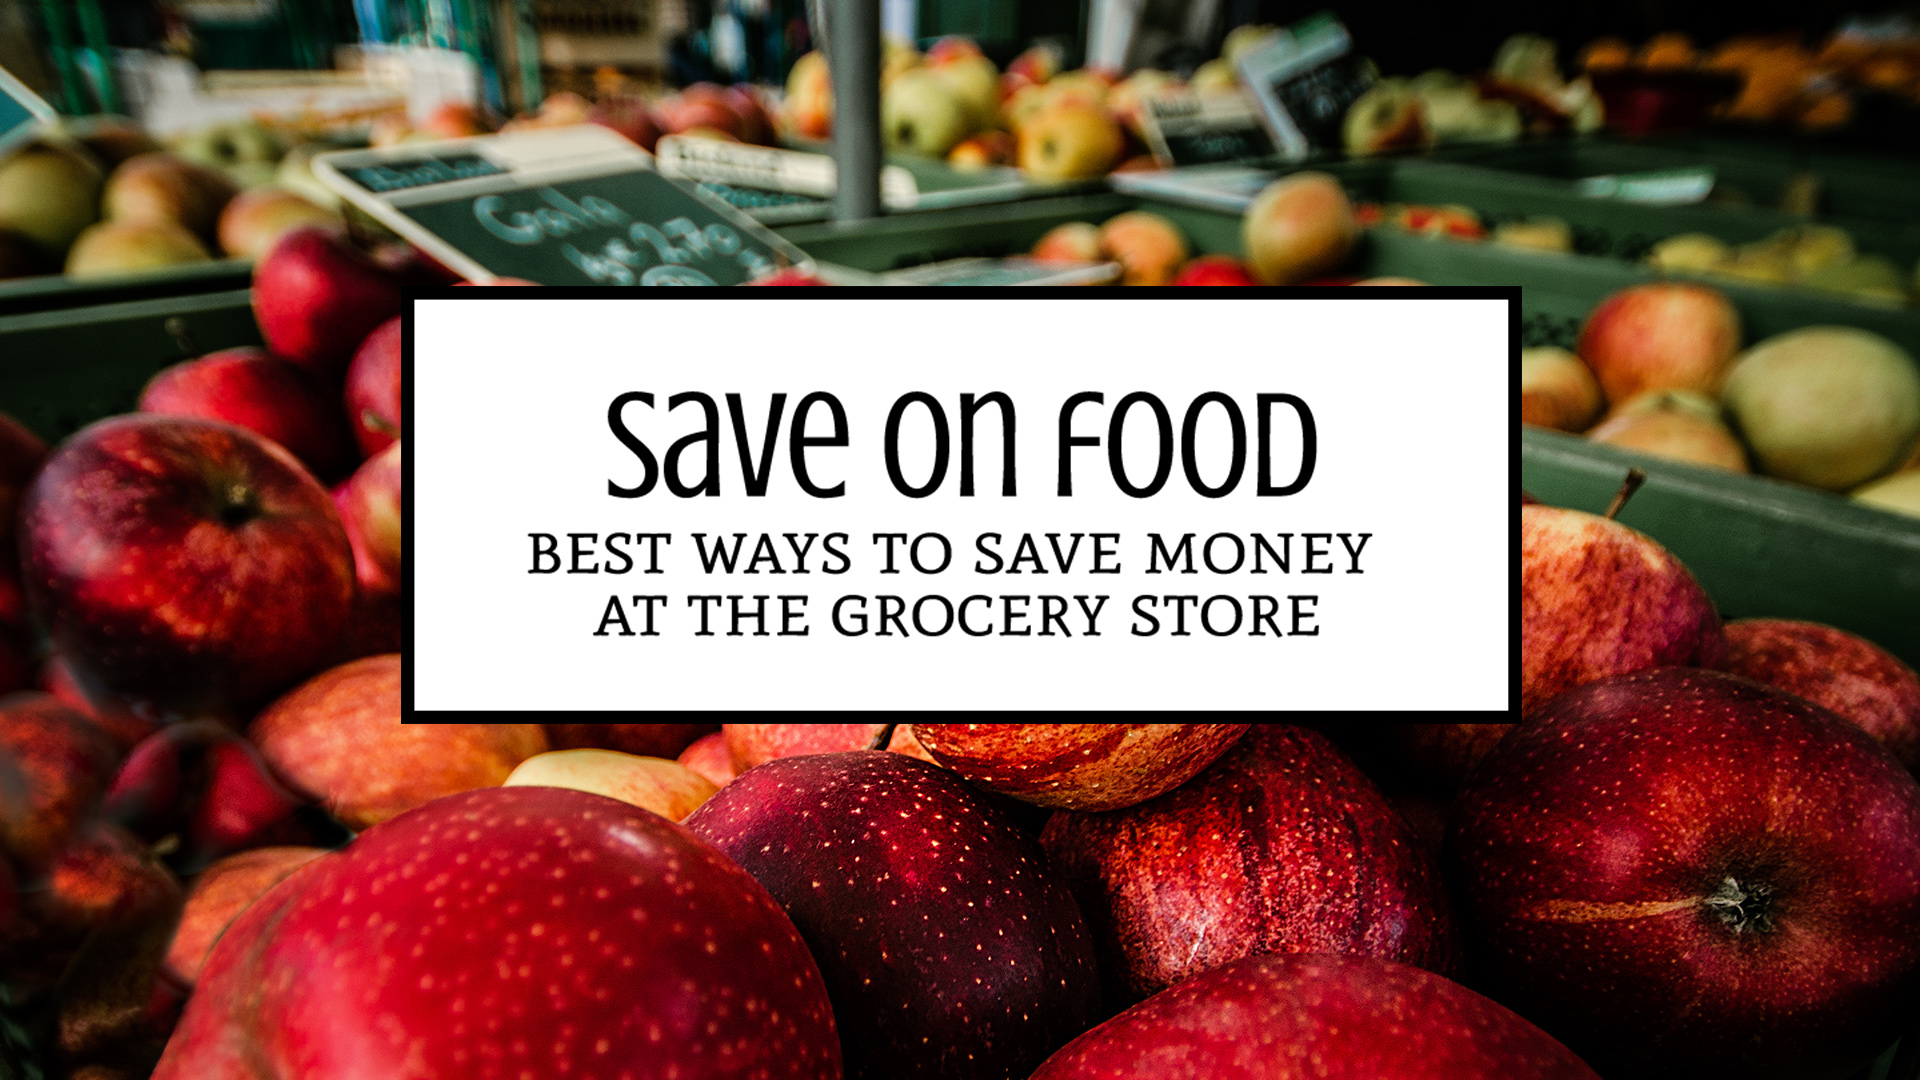 Frugal Cooking: The 10 Best and Easiest Ways to Save on Food at the Grocery Store: Just because we have tiny kitchens doesn't mean we can't save on food! These tips will help you end up with everything you need from the grocery store to feed your family and more money in your wallet. | Tiny Kitchen Cuisine | https://tiny.kitchen/